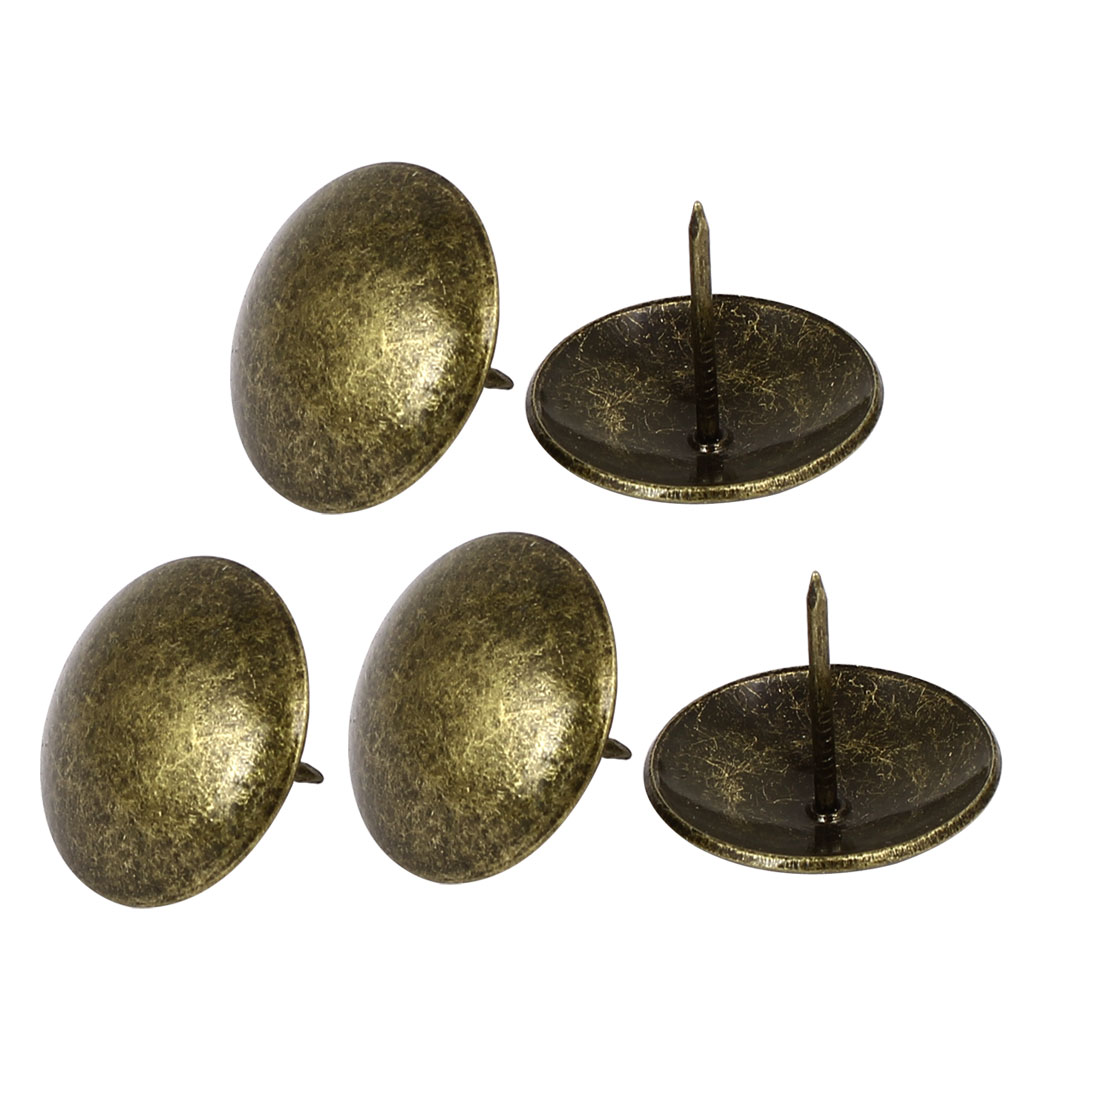 Home Furniture Round Head Iron Upholstery Tack Nails Bronze Tone 30mmx25mm 5 Pcs